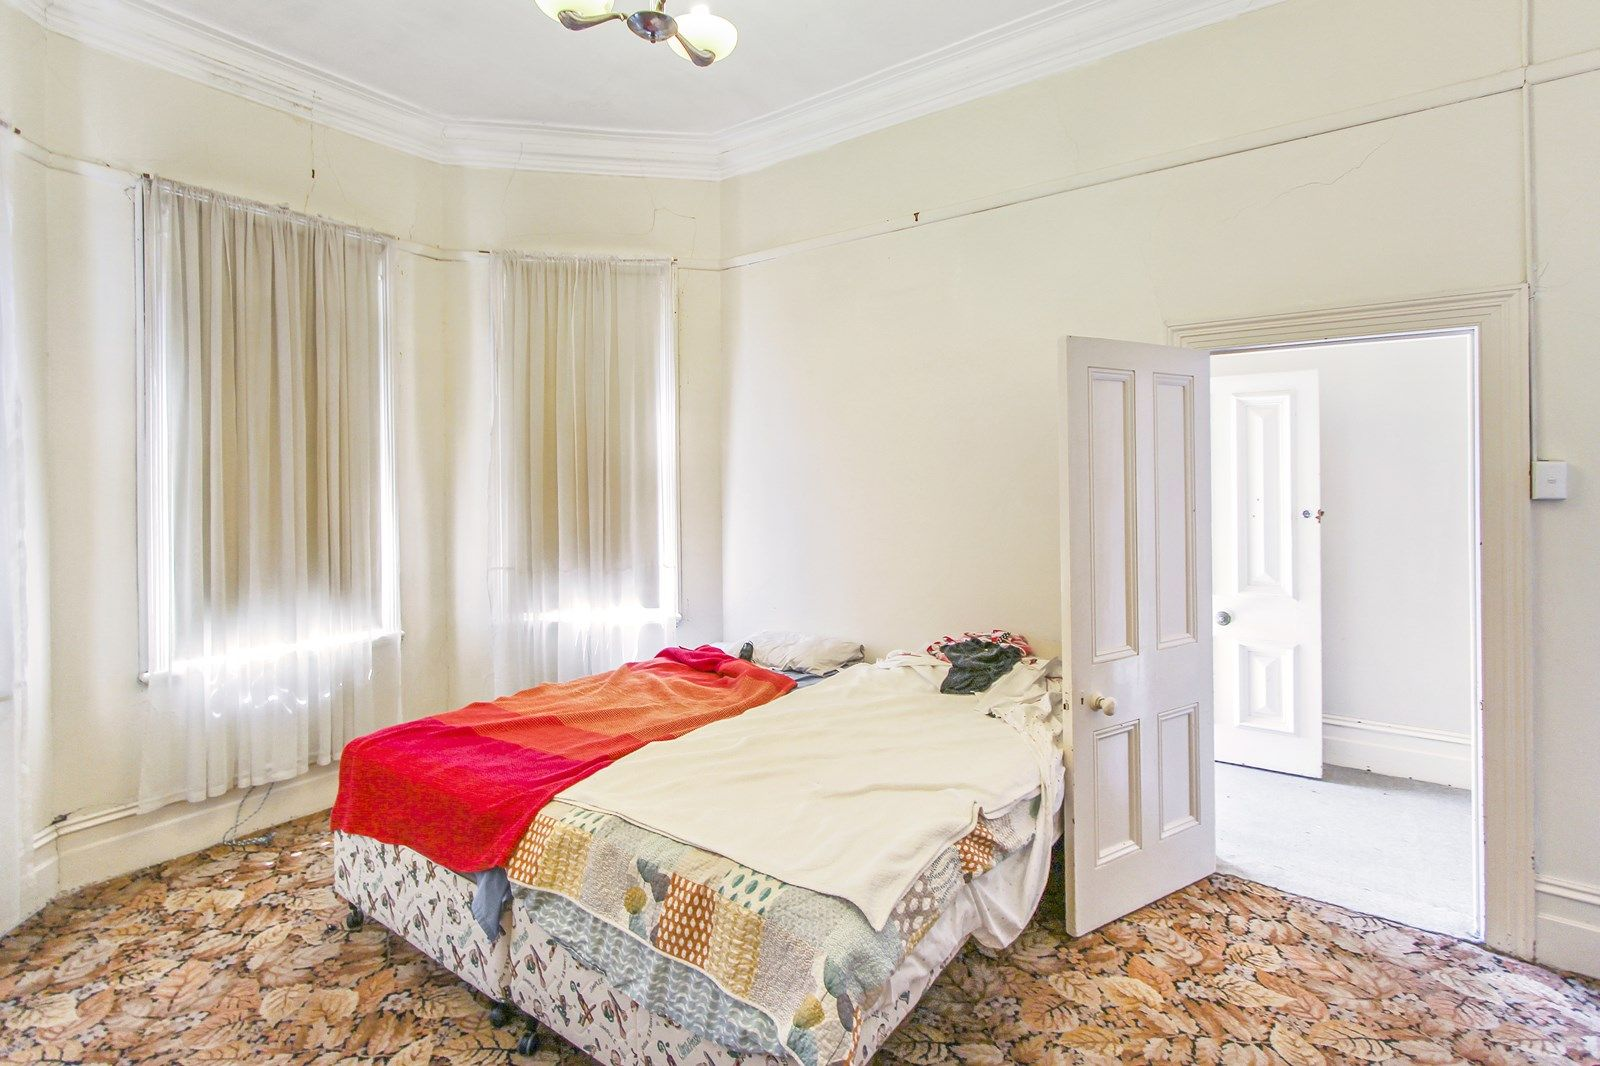 25 Spensley Street, Clifton Hill VIC 3068, Image 2